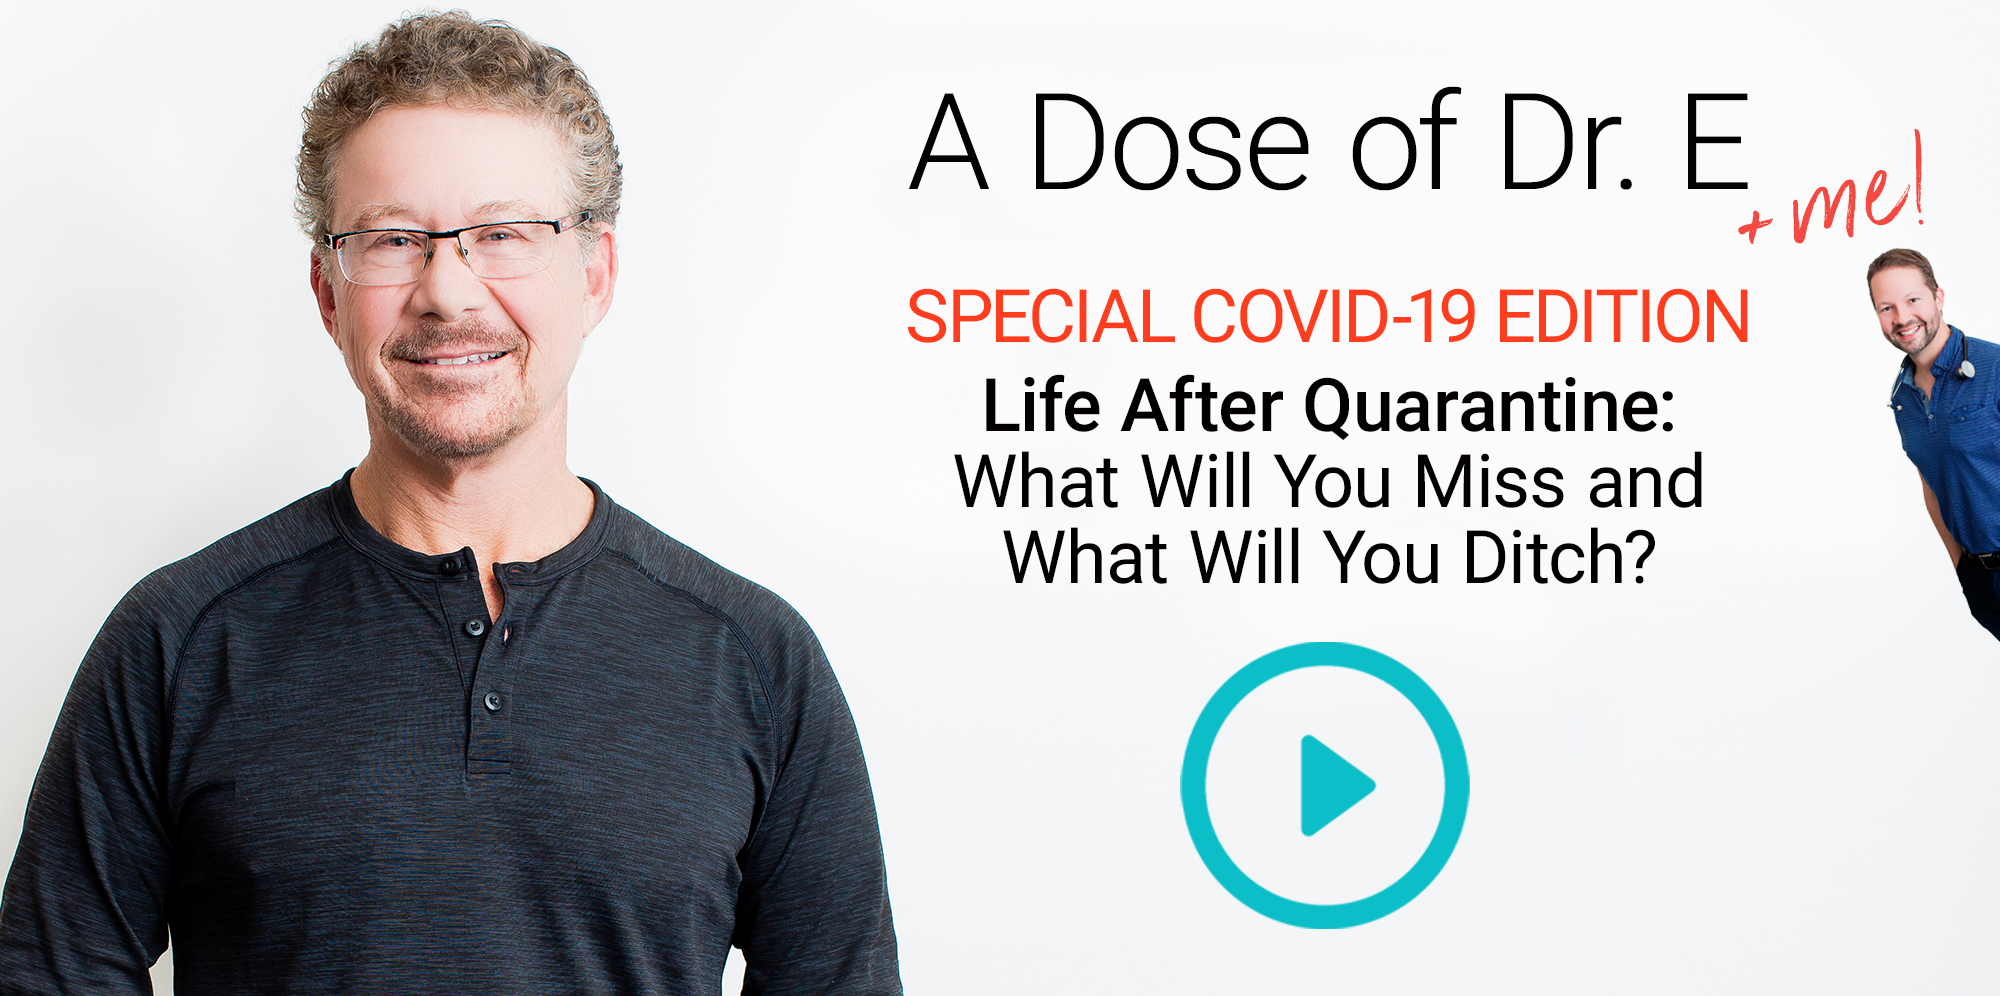 Life After Quarantine: What Will You Miss and What Will You Ditch?